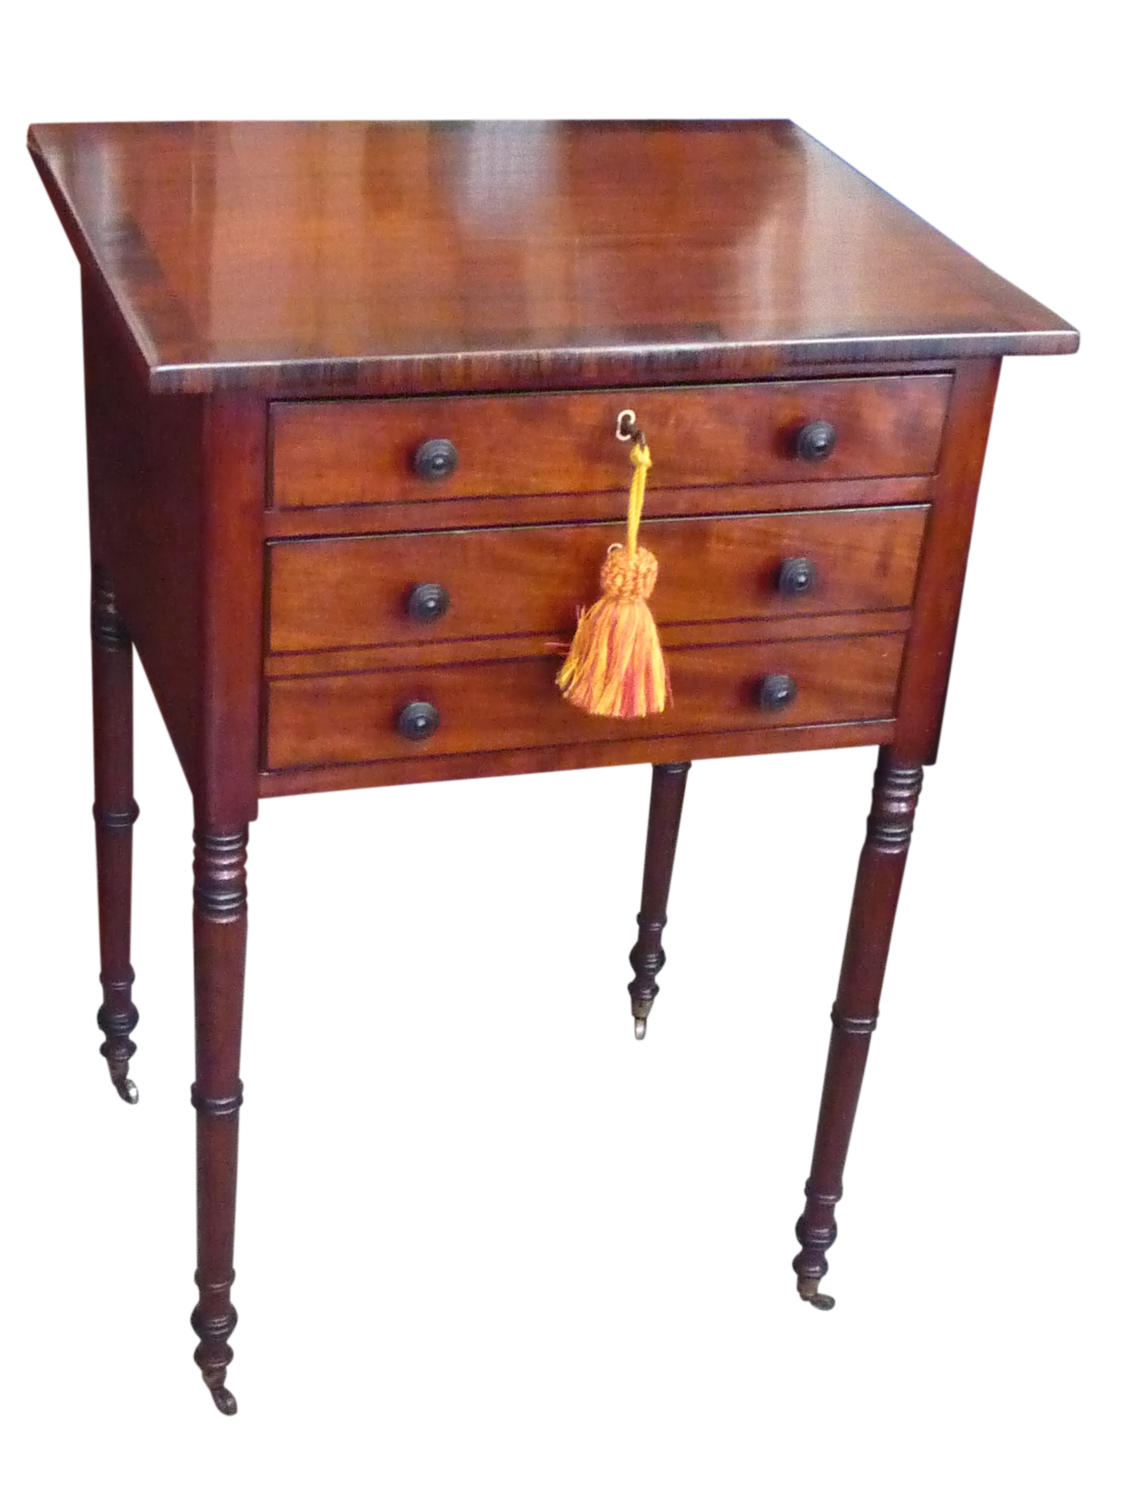 An attractive Regency mahogany work table